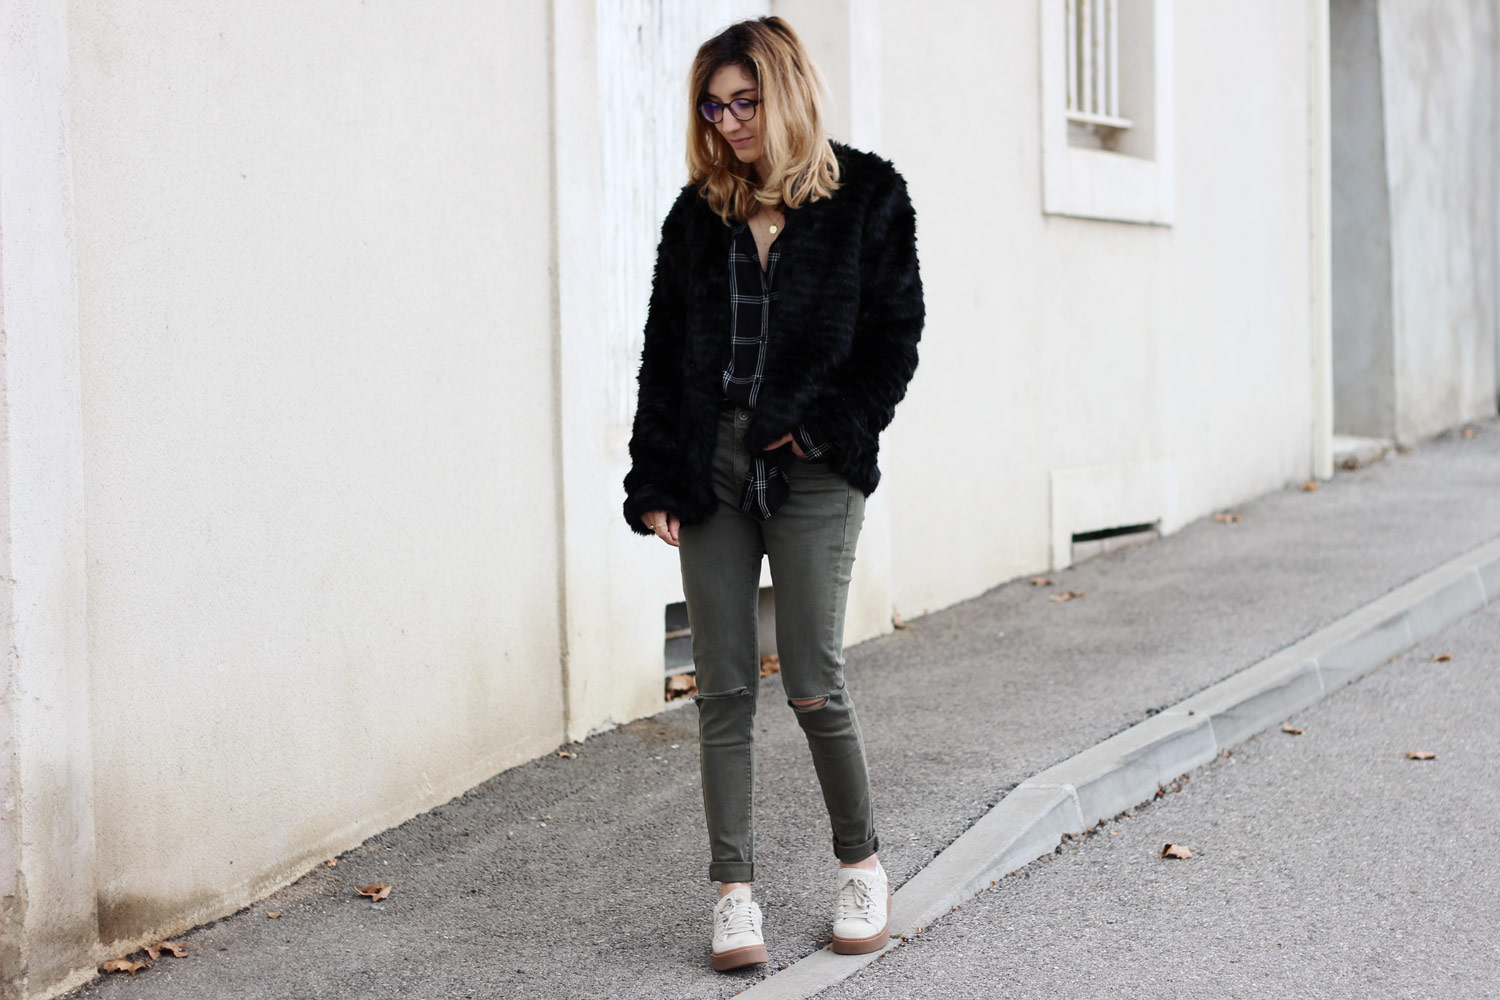 blog-mode-faux-fur-coat-kaki-jeans-look